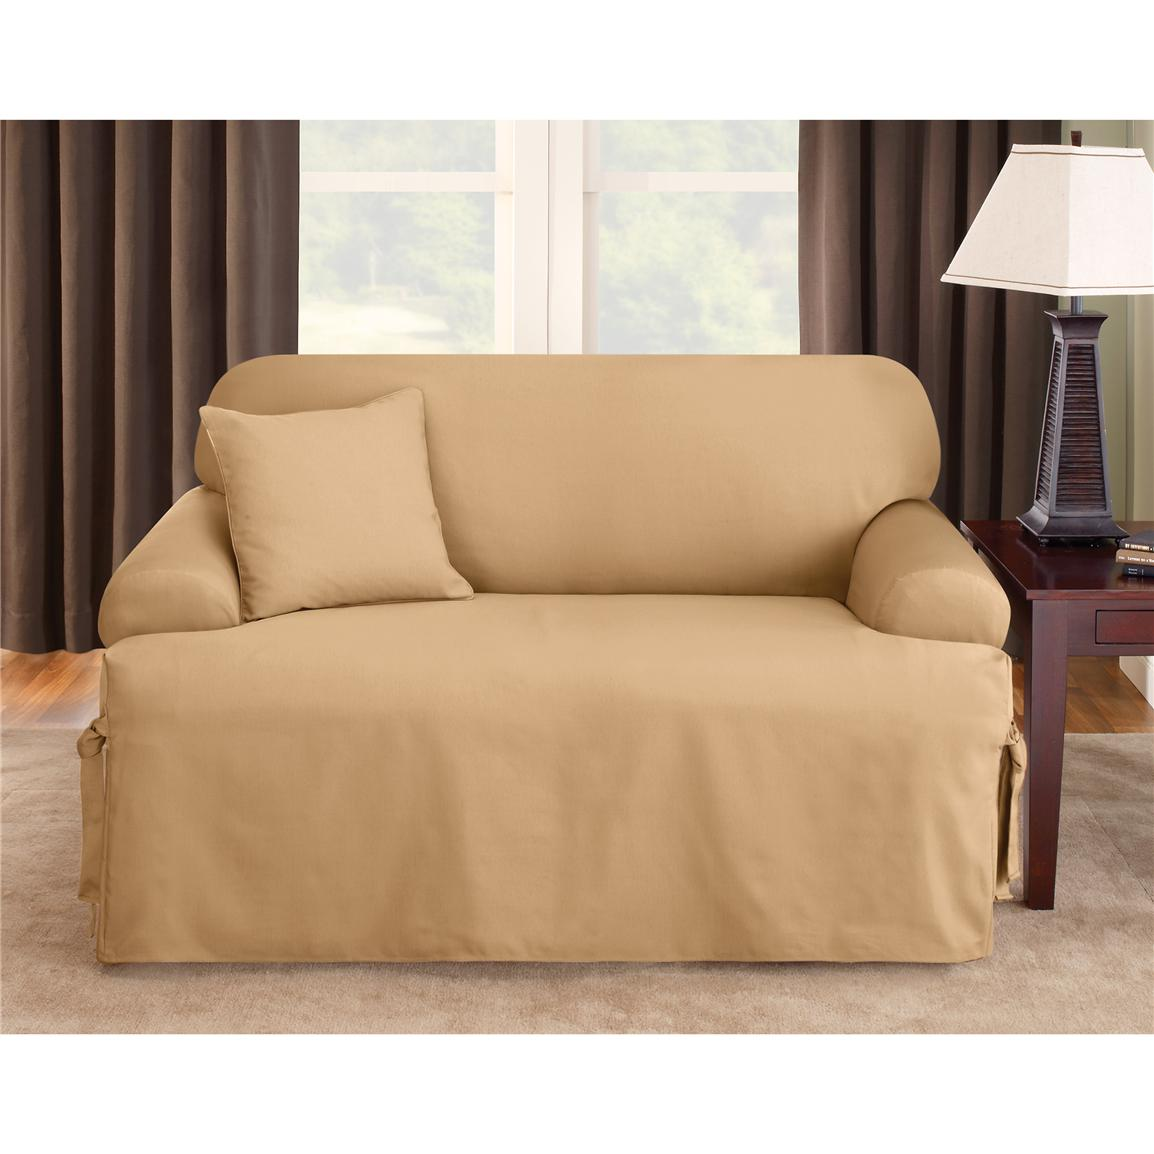 wonderful sofa with cream surefit cover next to a brown wooden nightstand with table lamp for living room decor ideas